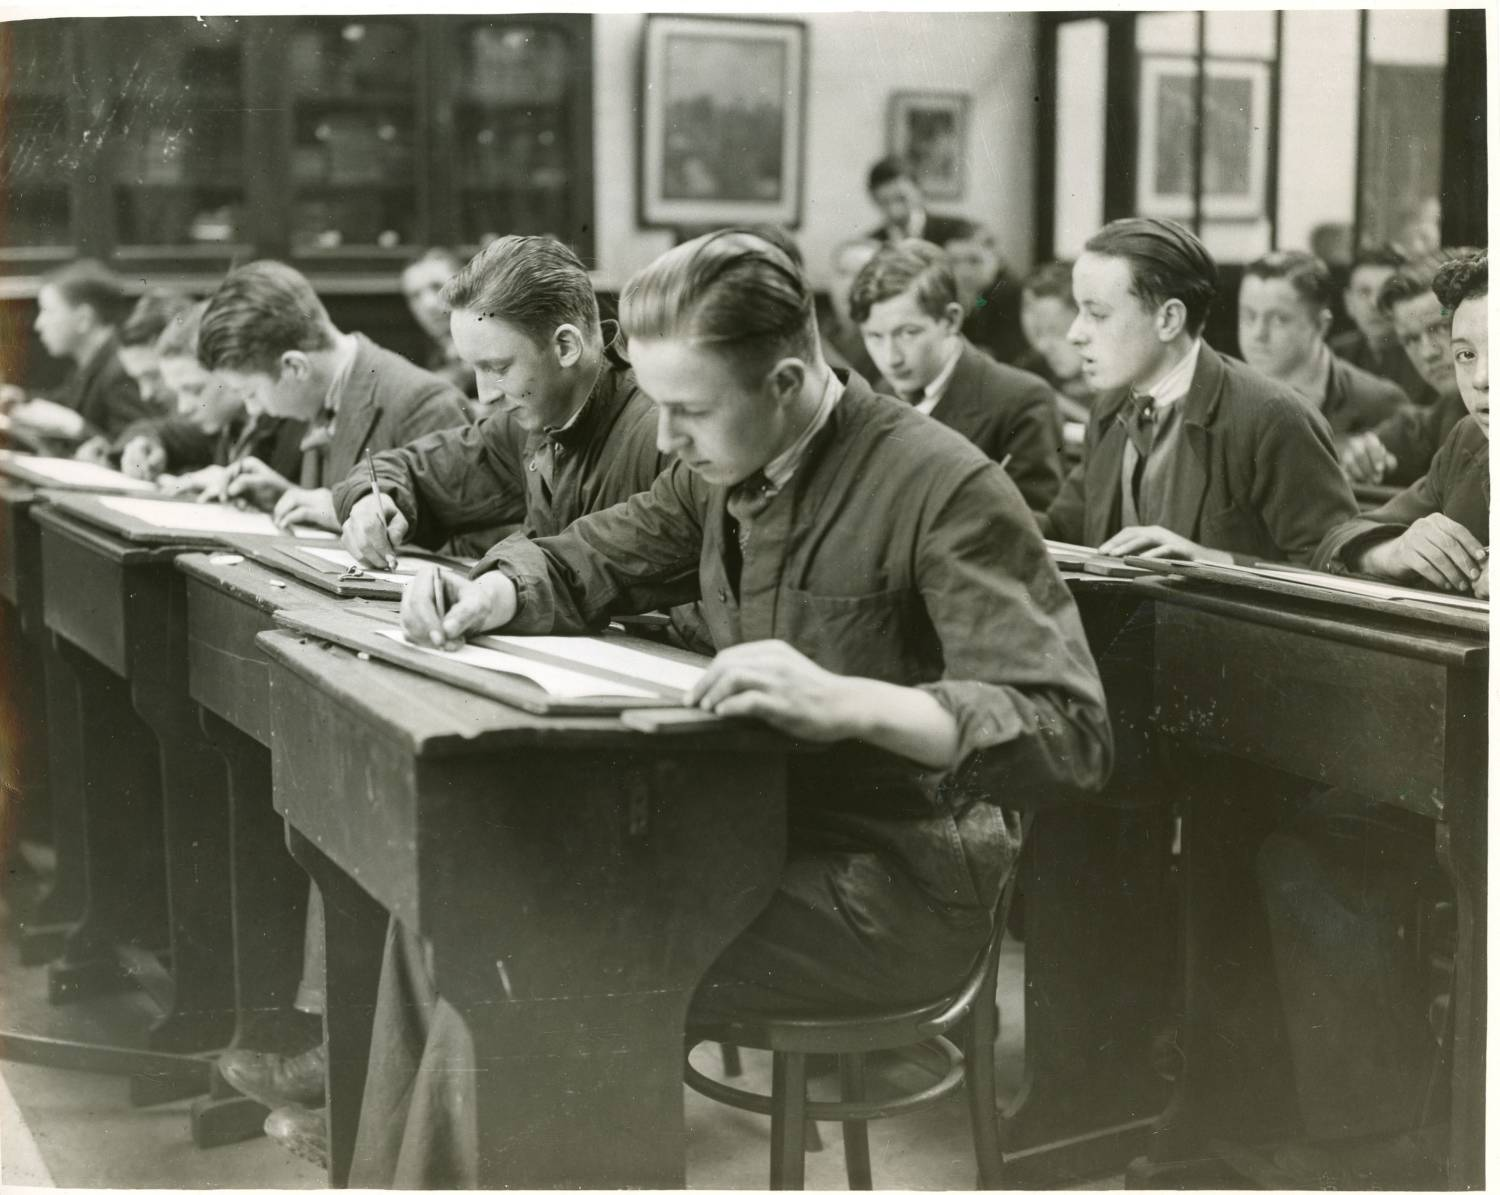 Mather & Platt apprentices, 2 Apr 1936.